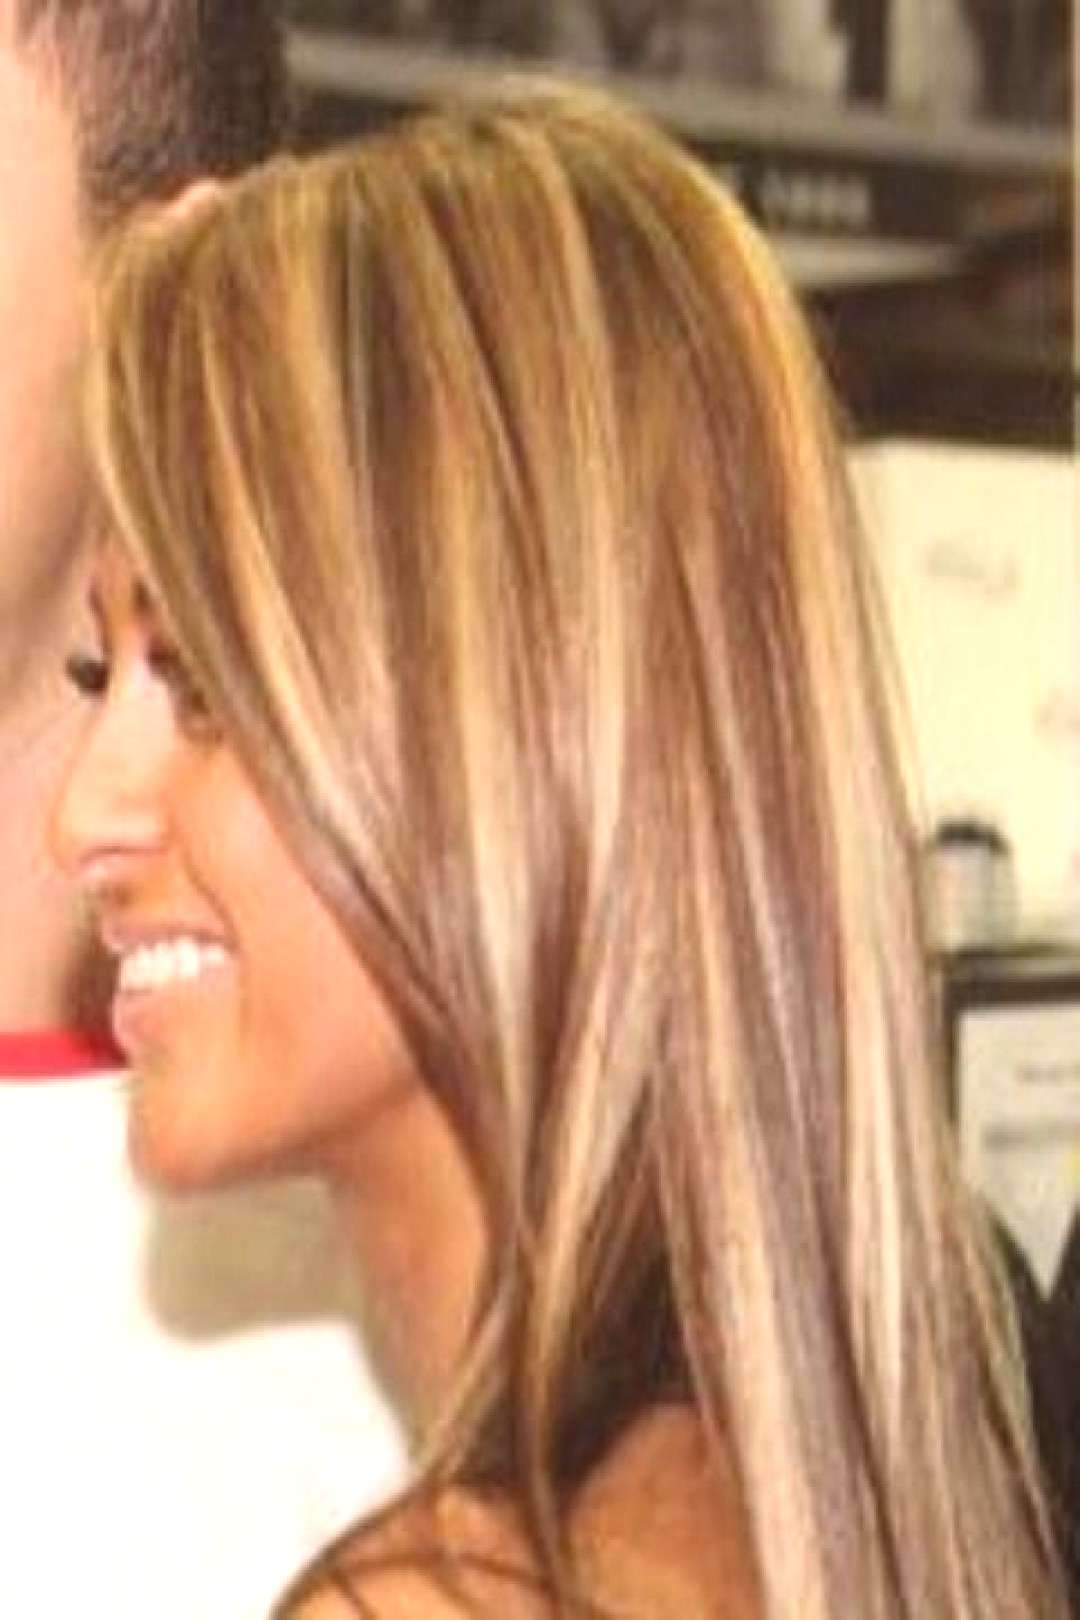 Getting my hair done like this tomorrow... Cant wait to have my highlights back